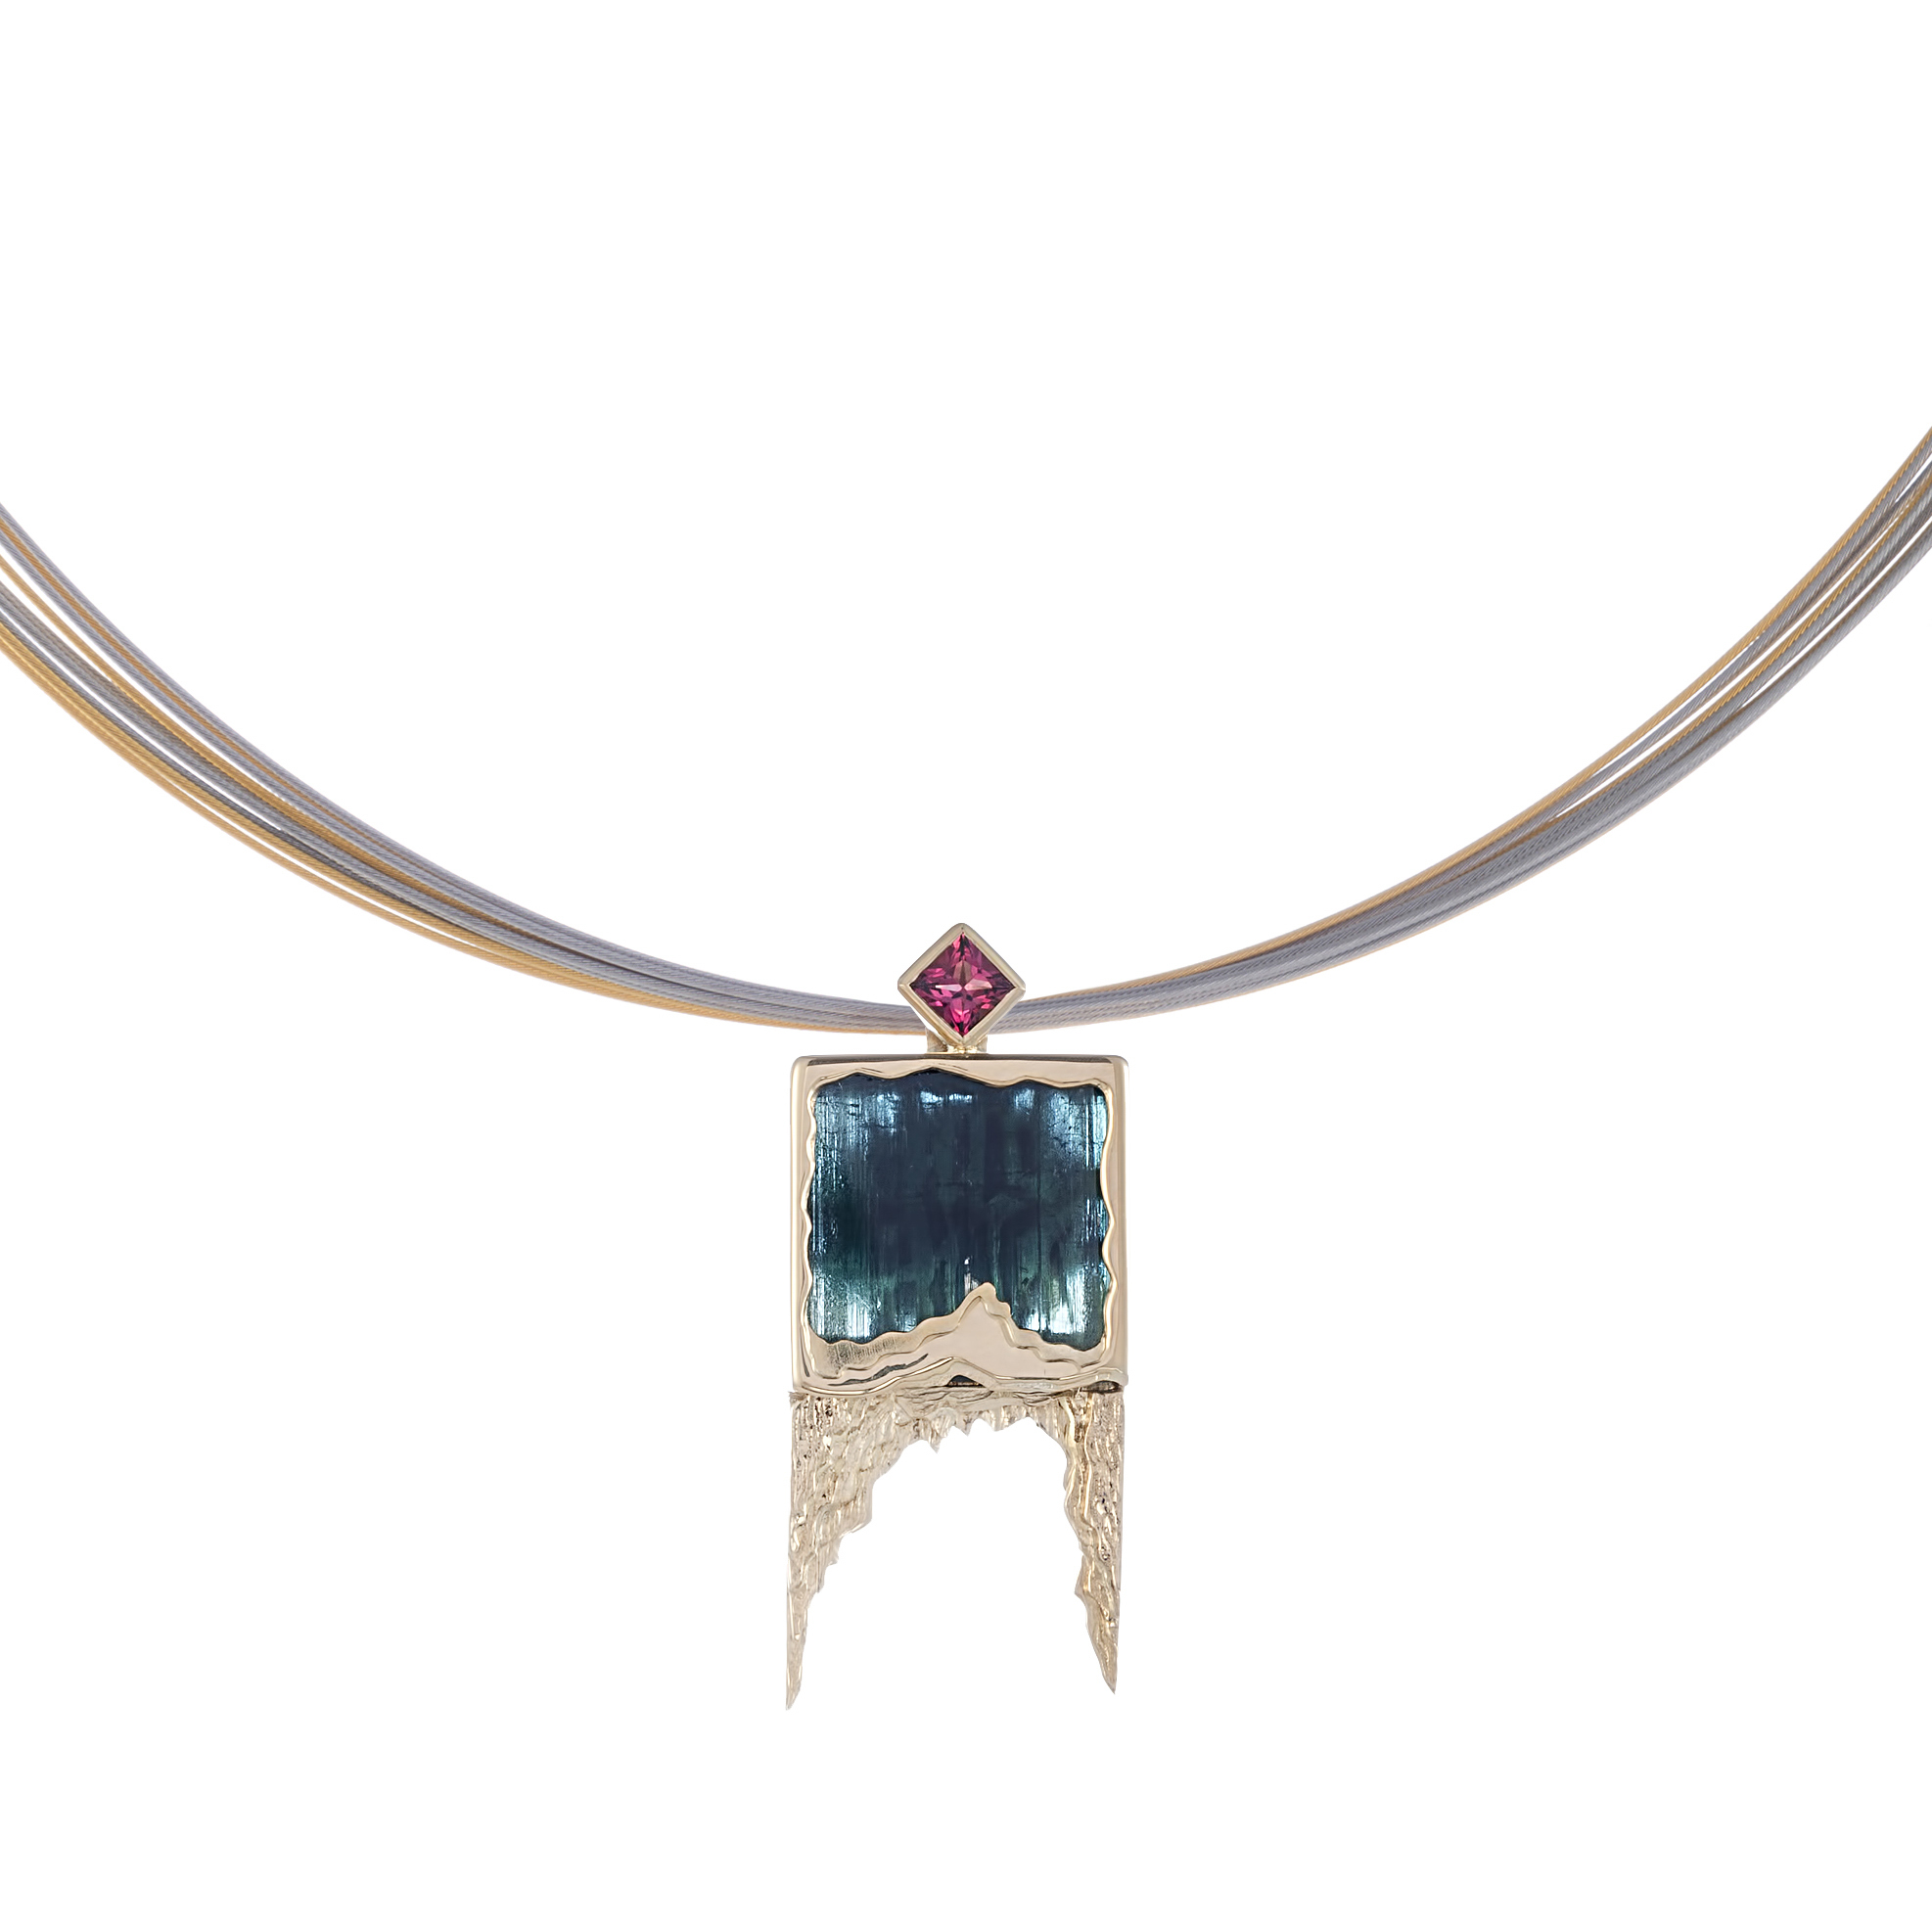 Indicolite Tourmaline polished one side and left raw on the back ,encased in an 18ct mount with a Rubalite Toumaline at the top  can be worn on chain or wire  sold separately  Available